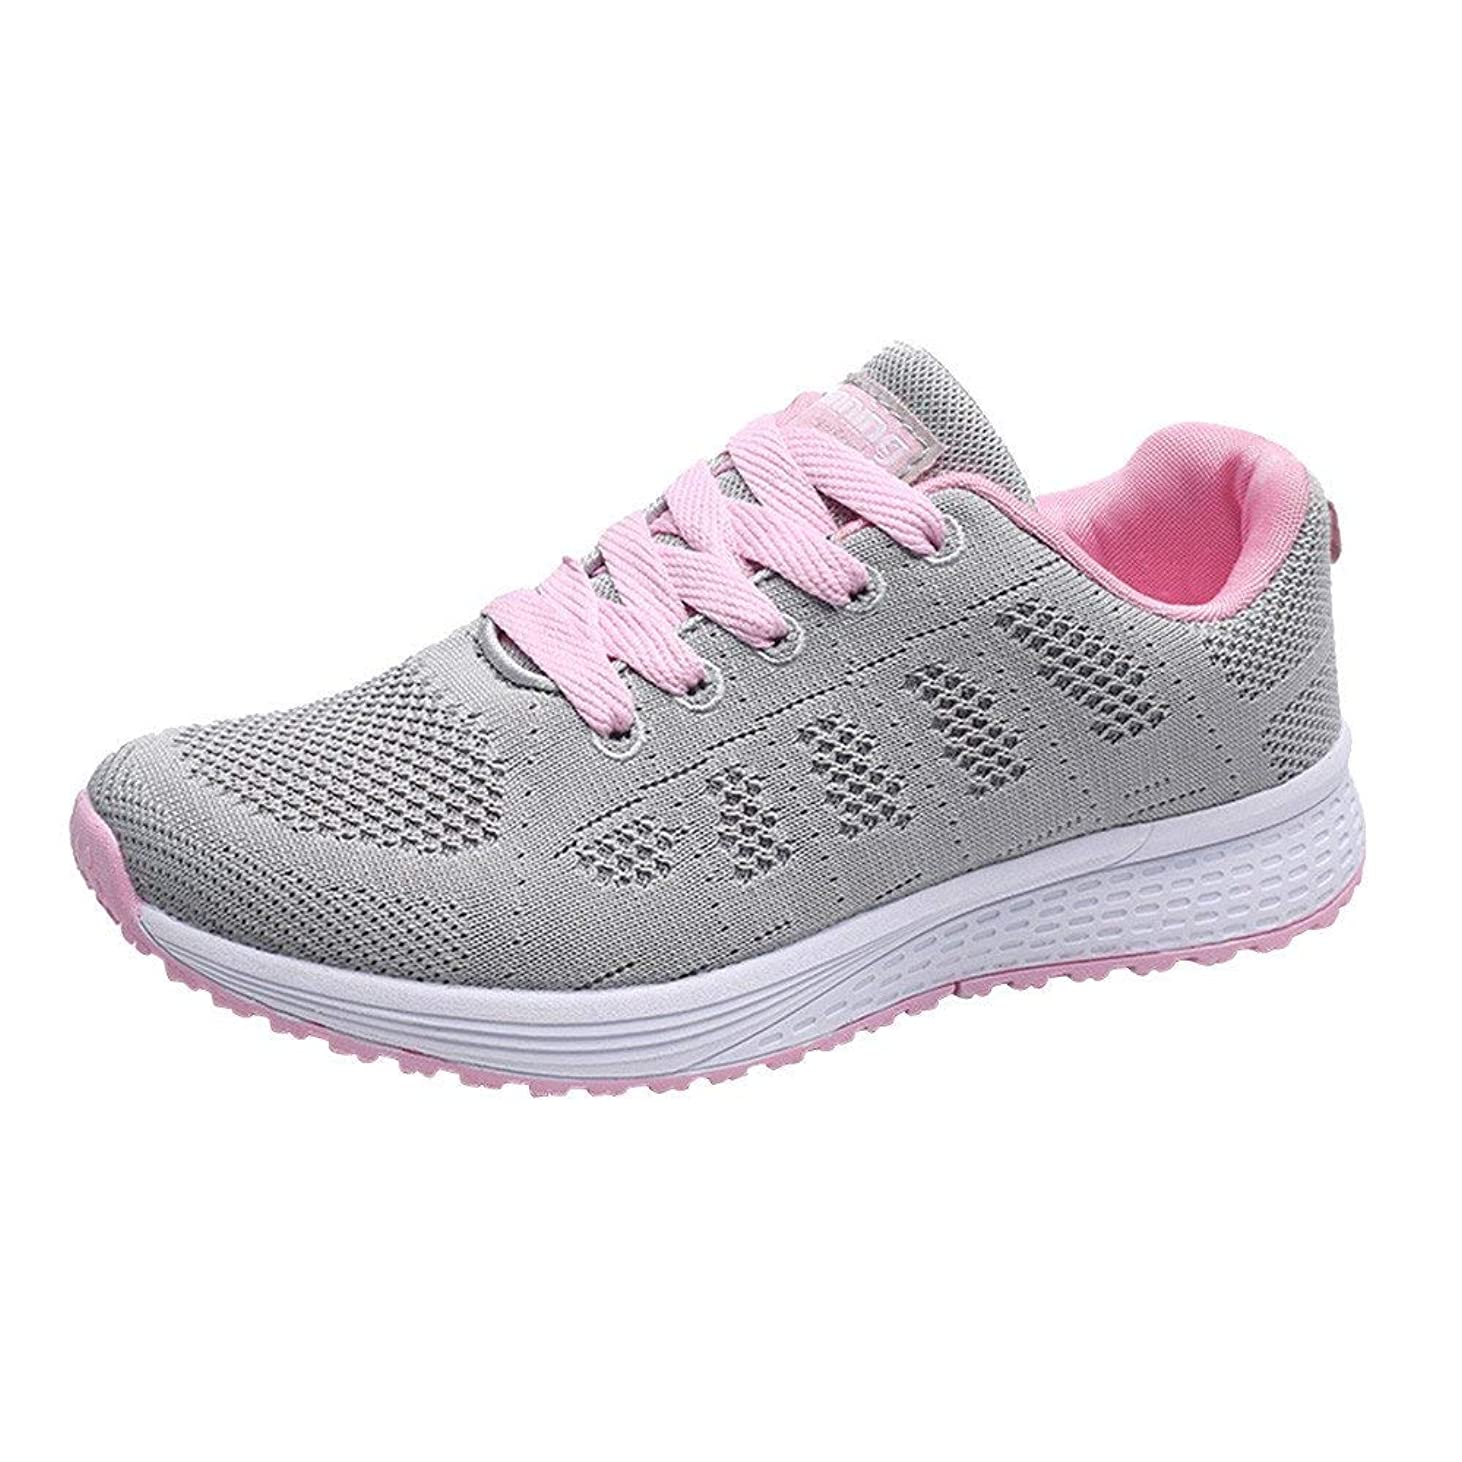 25f7b61e77c0a womens walking shoes - locksmithepping.com